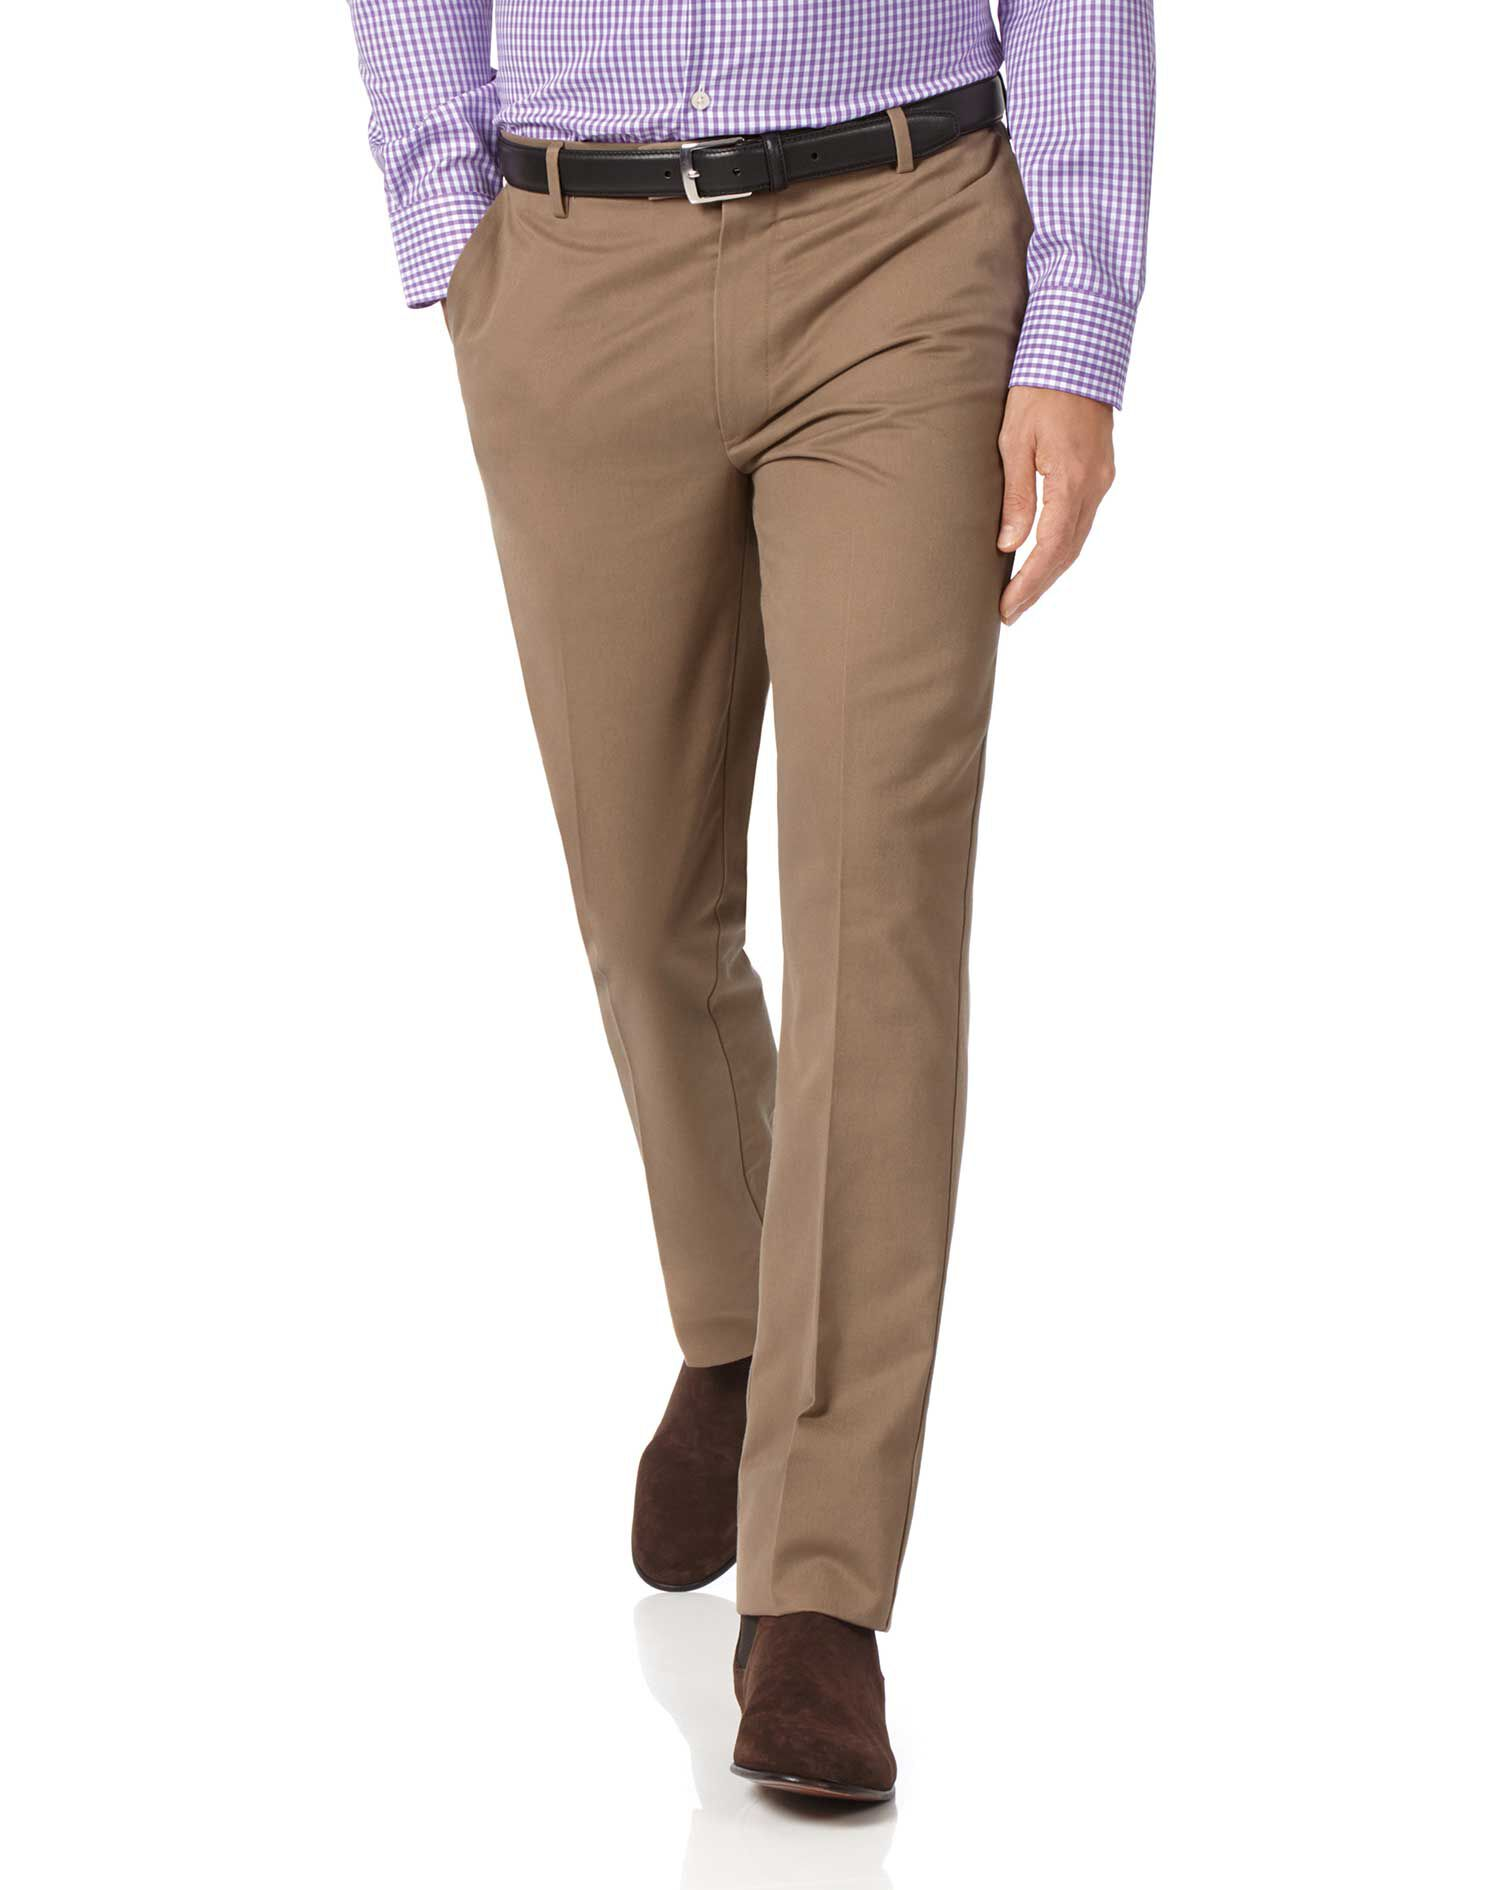 Tan Extra Slim Fit Flat Front Non-Iron Cotton Chino Trousers Size W32 L29 by Charles Tyrwhitt